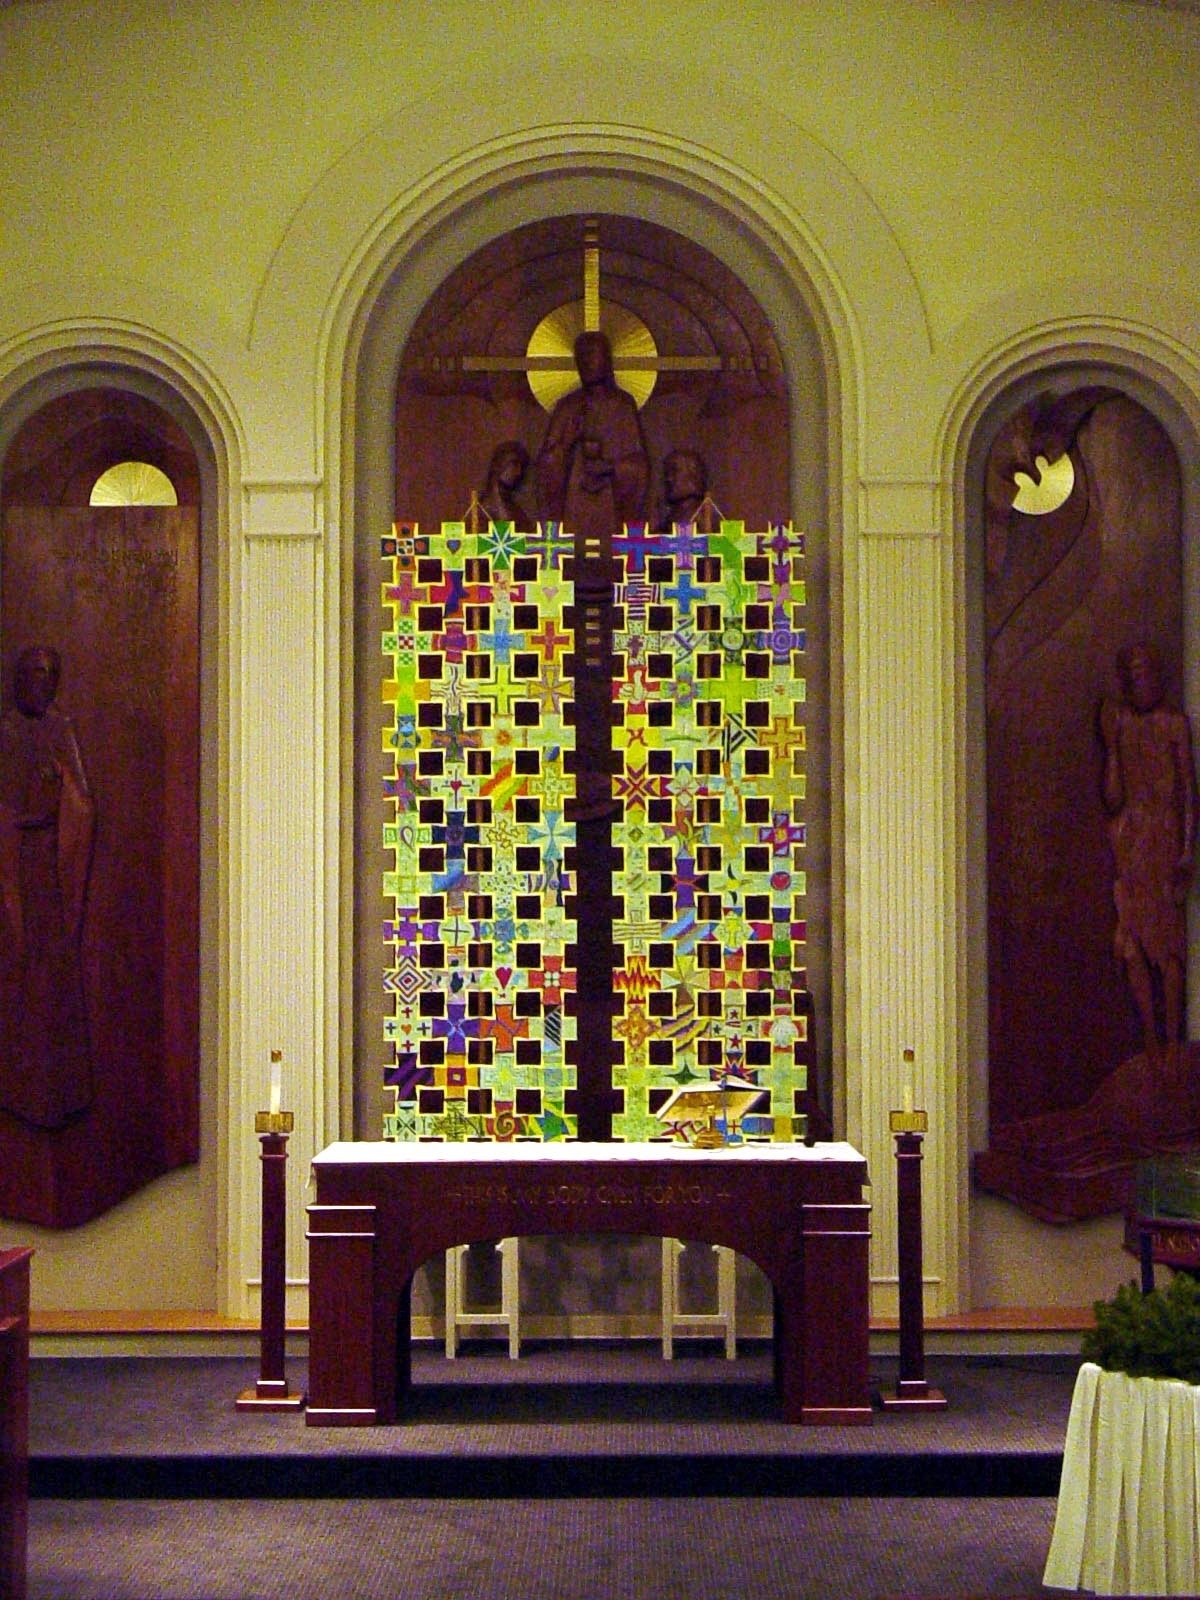 Chancel Installation, community-made Crosses of Discipleship